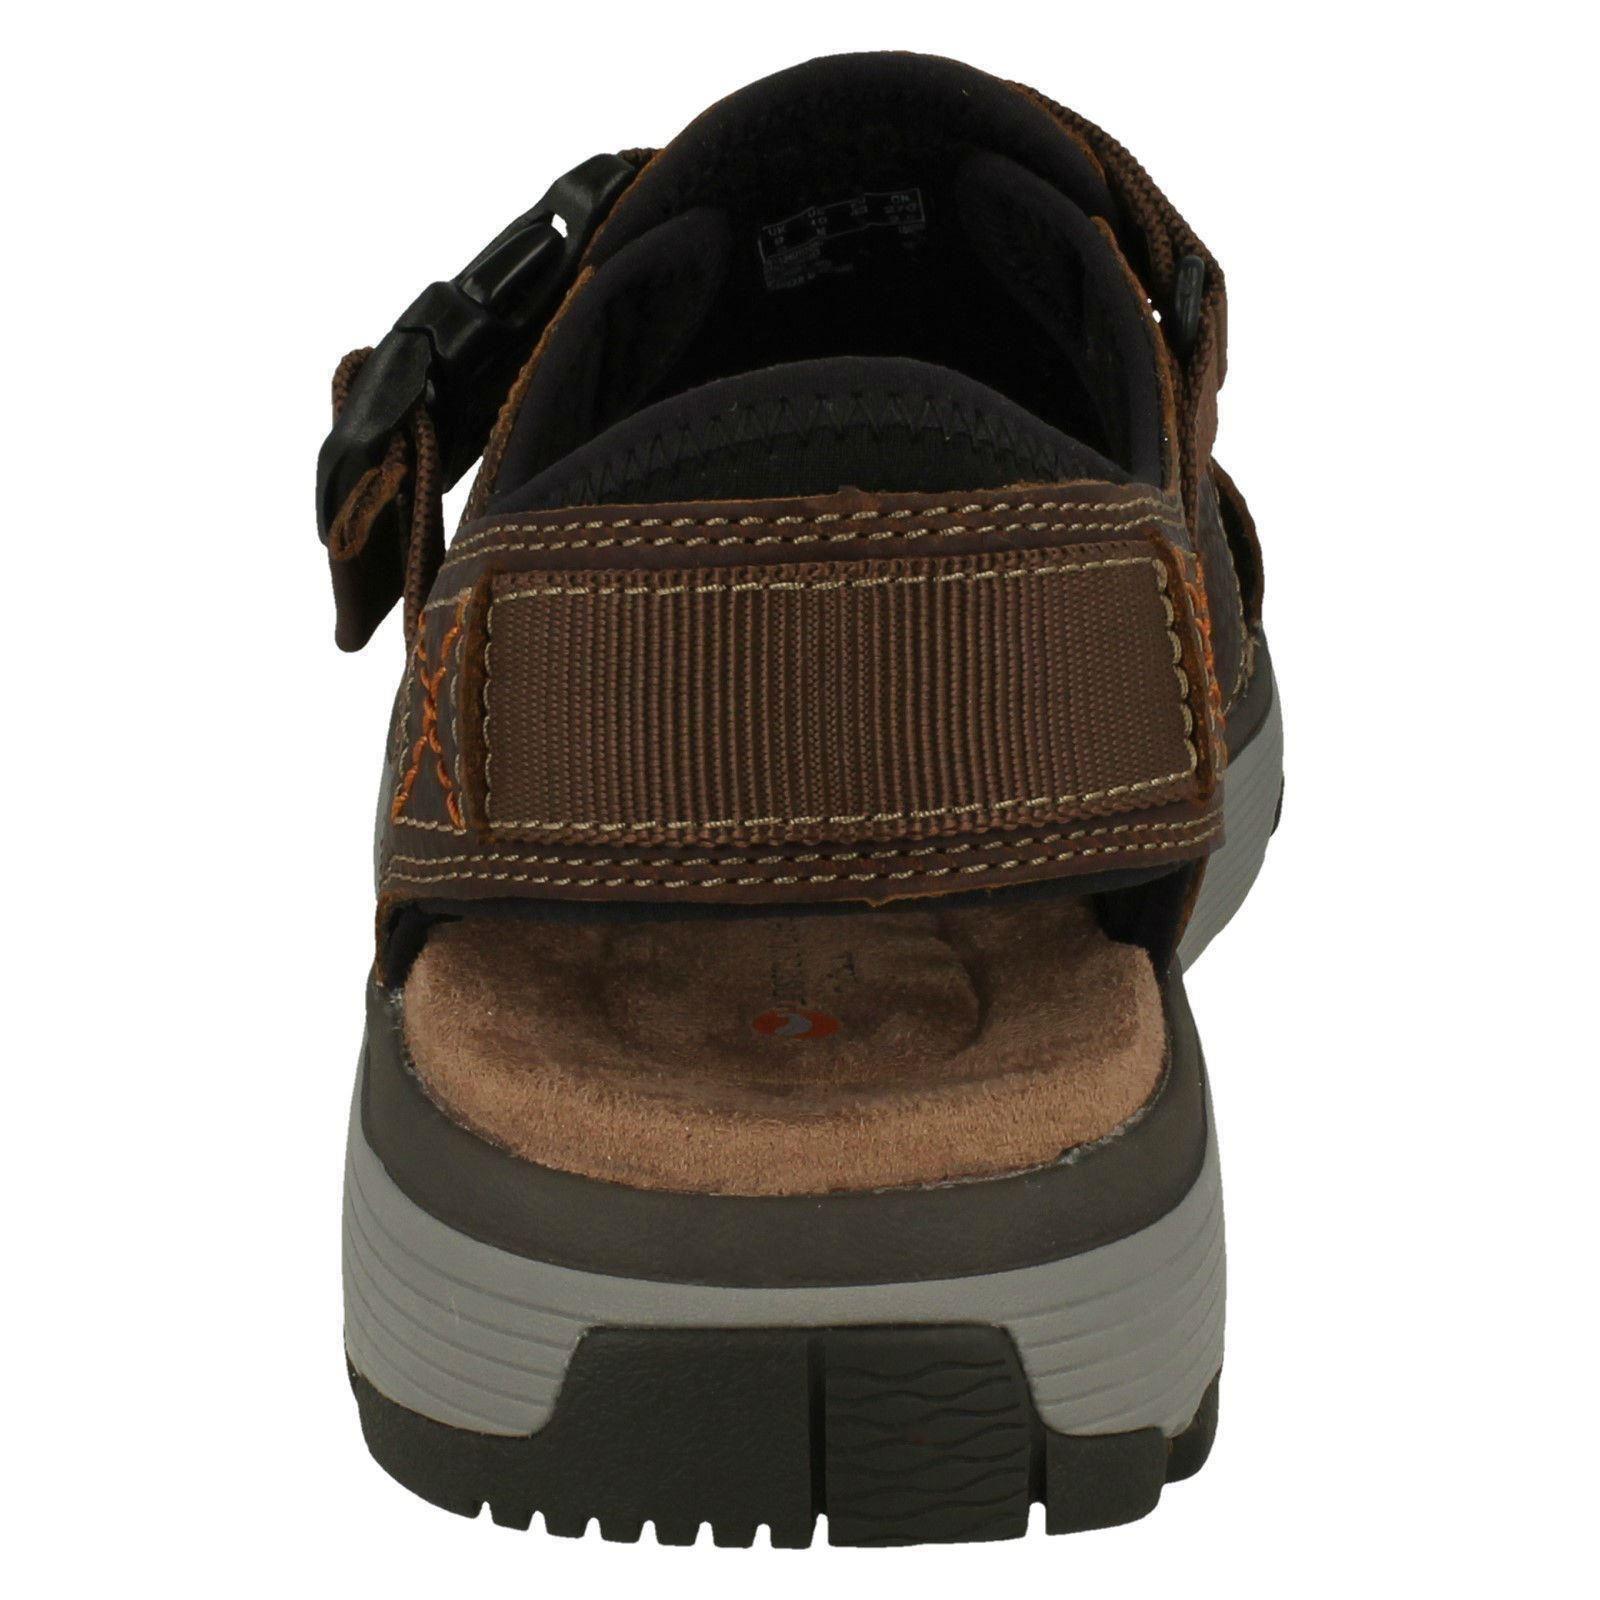 Mens Unstructured by Clarks Leather - Slingback Sandals The Style - Leather Un Trek Cove 5ea2bd